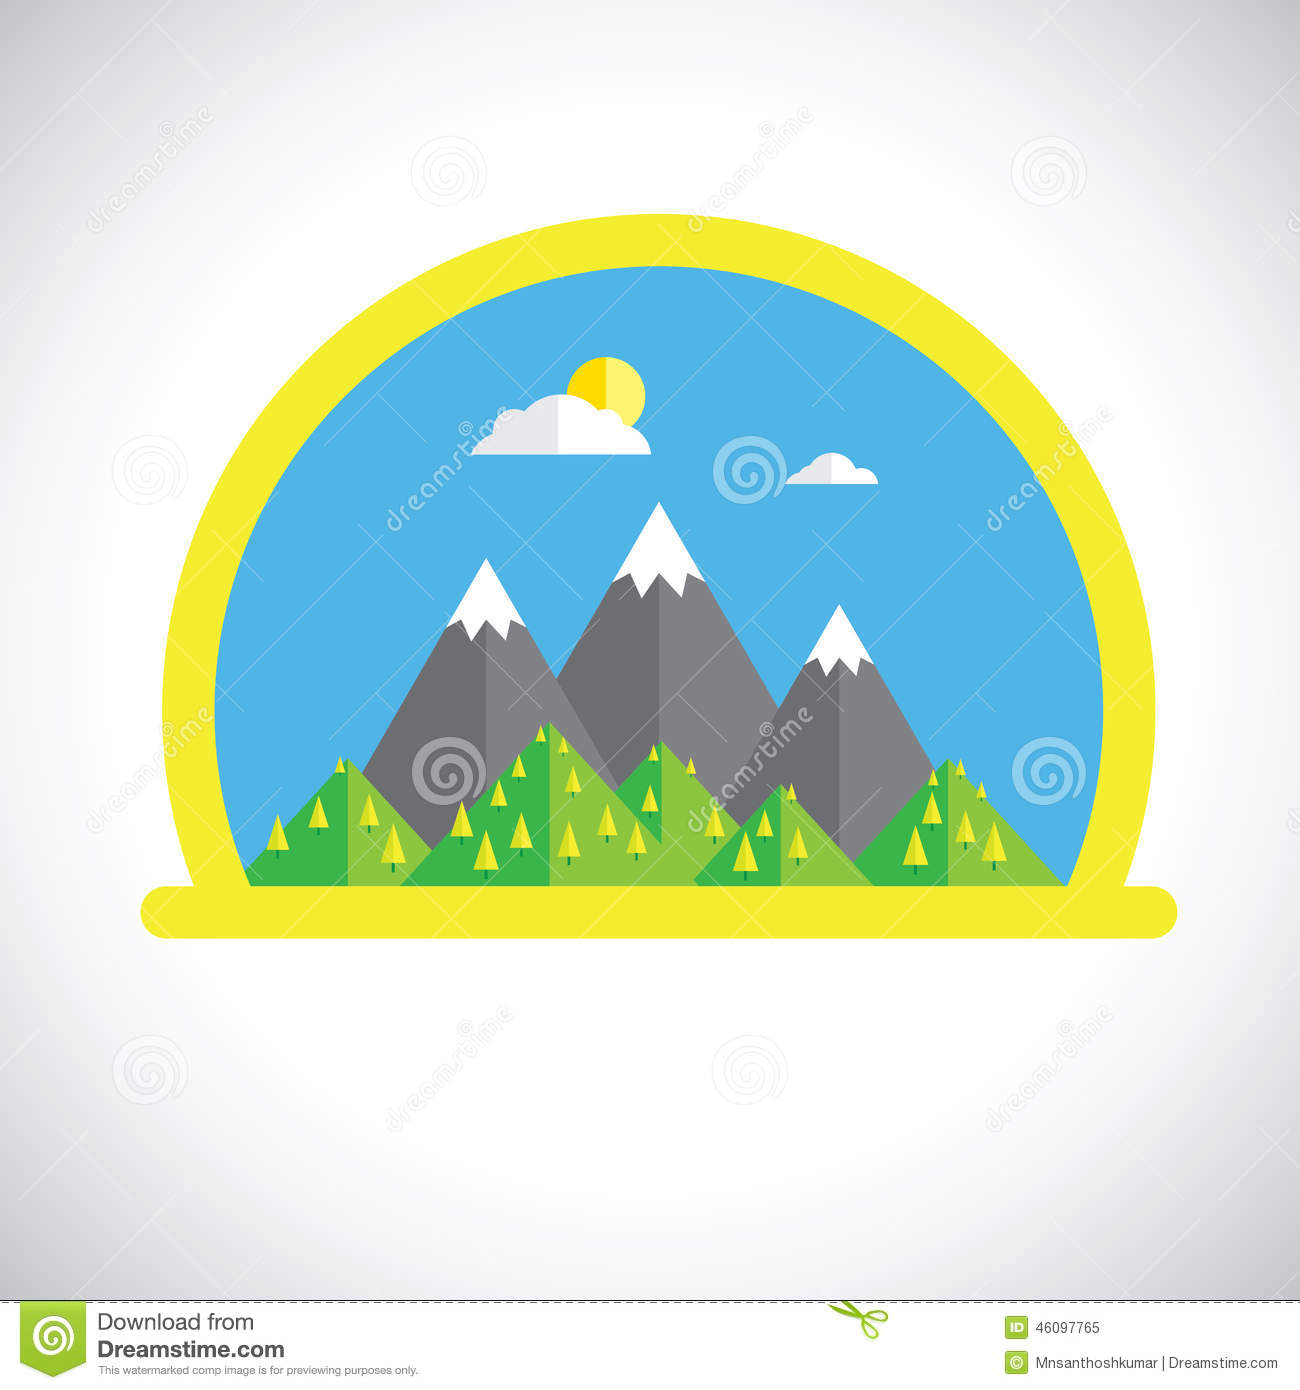 Nature Images 2mb: Flat Design Nature Landscape With Sun, Mountains & Clouds